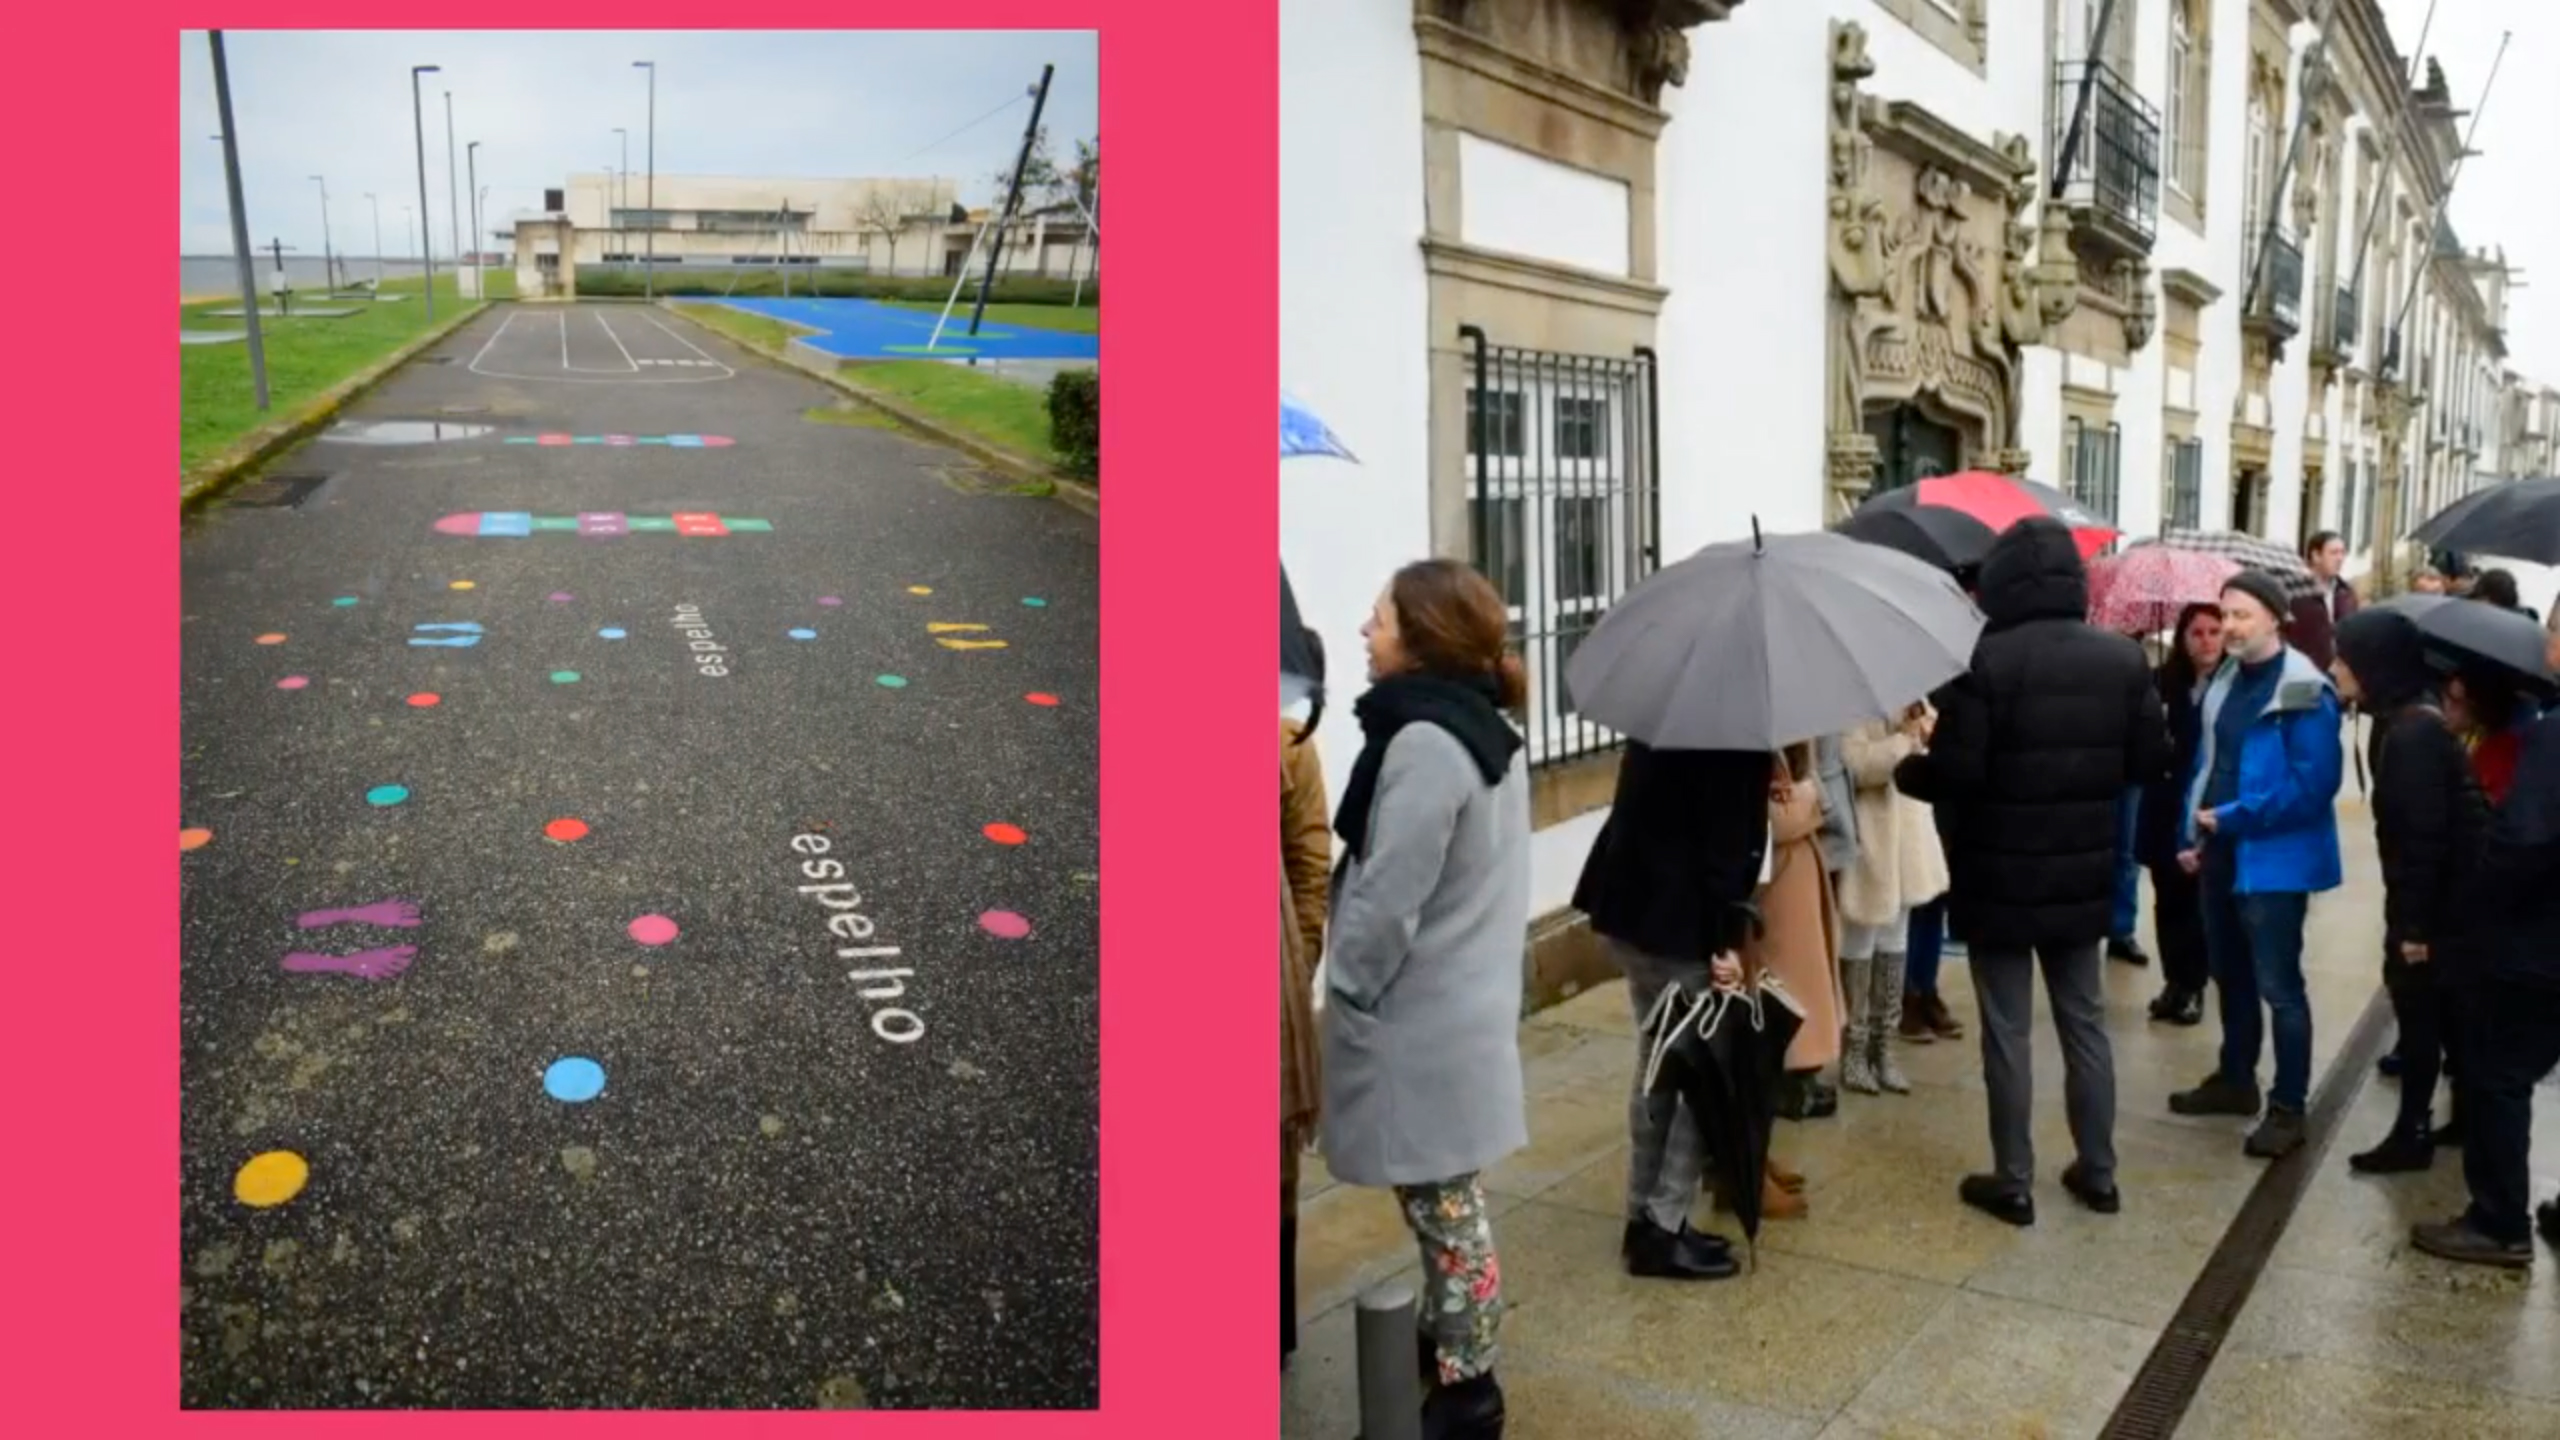 The Project Partners walk uder the rain across Viana do Castello (Portugal) and a road with playable decorations